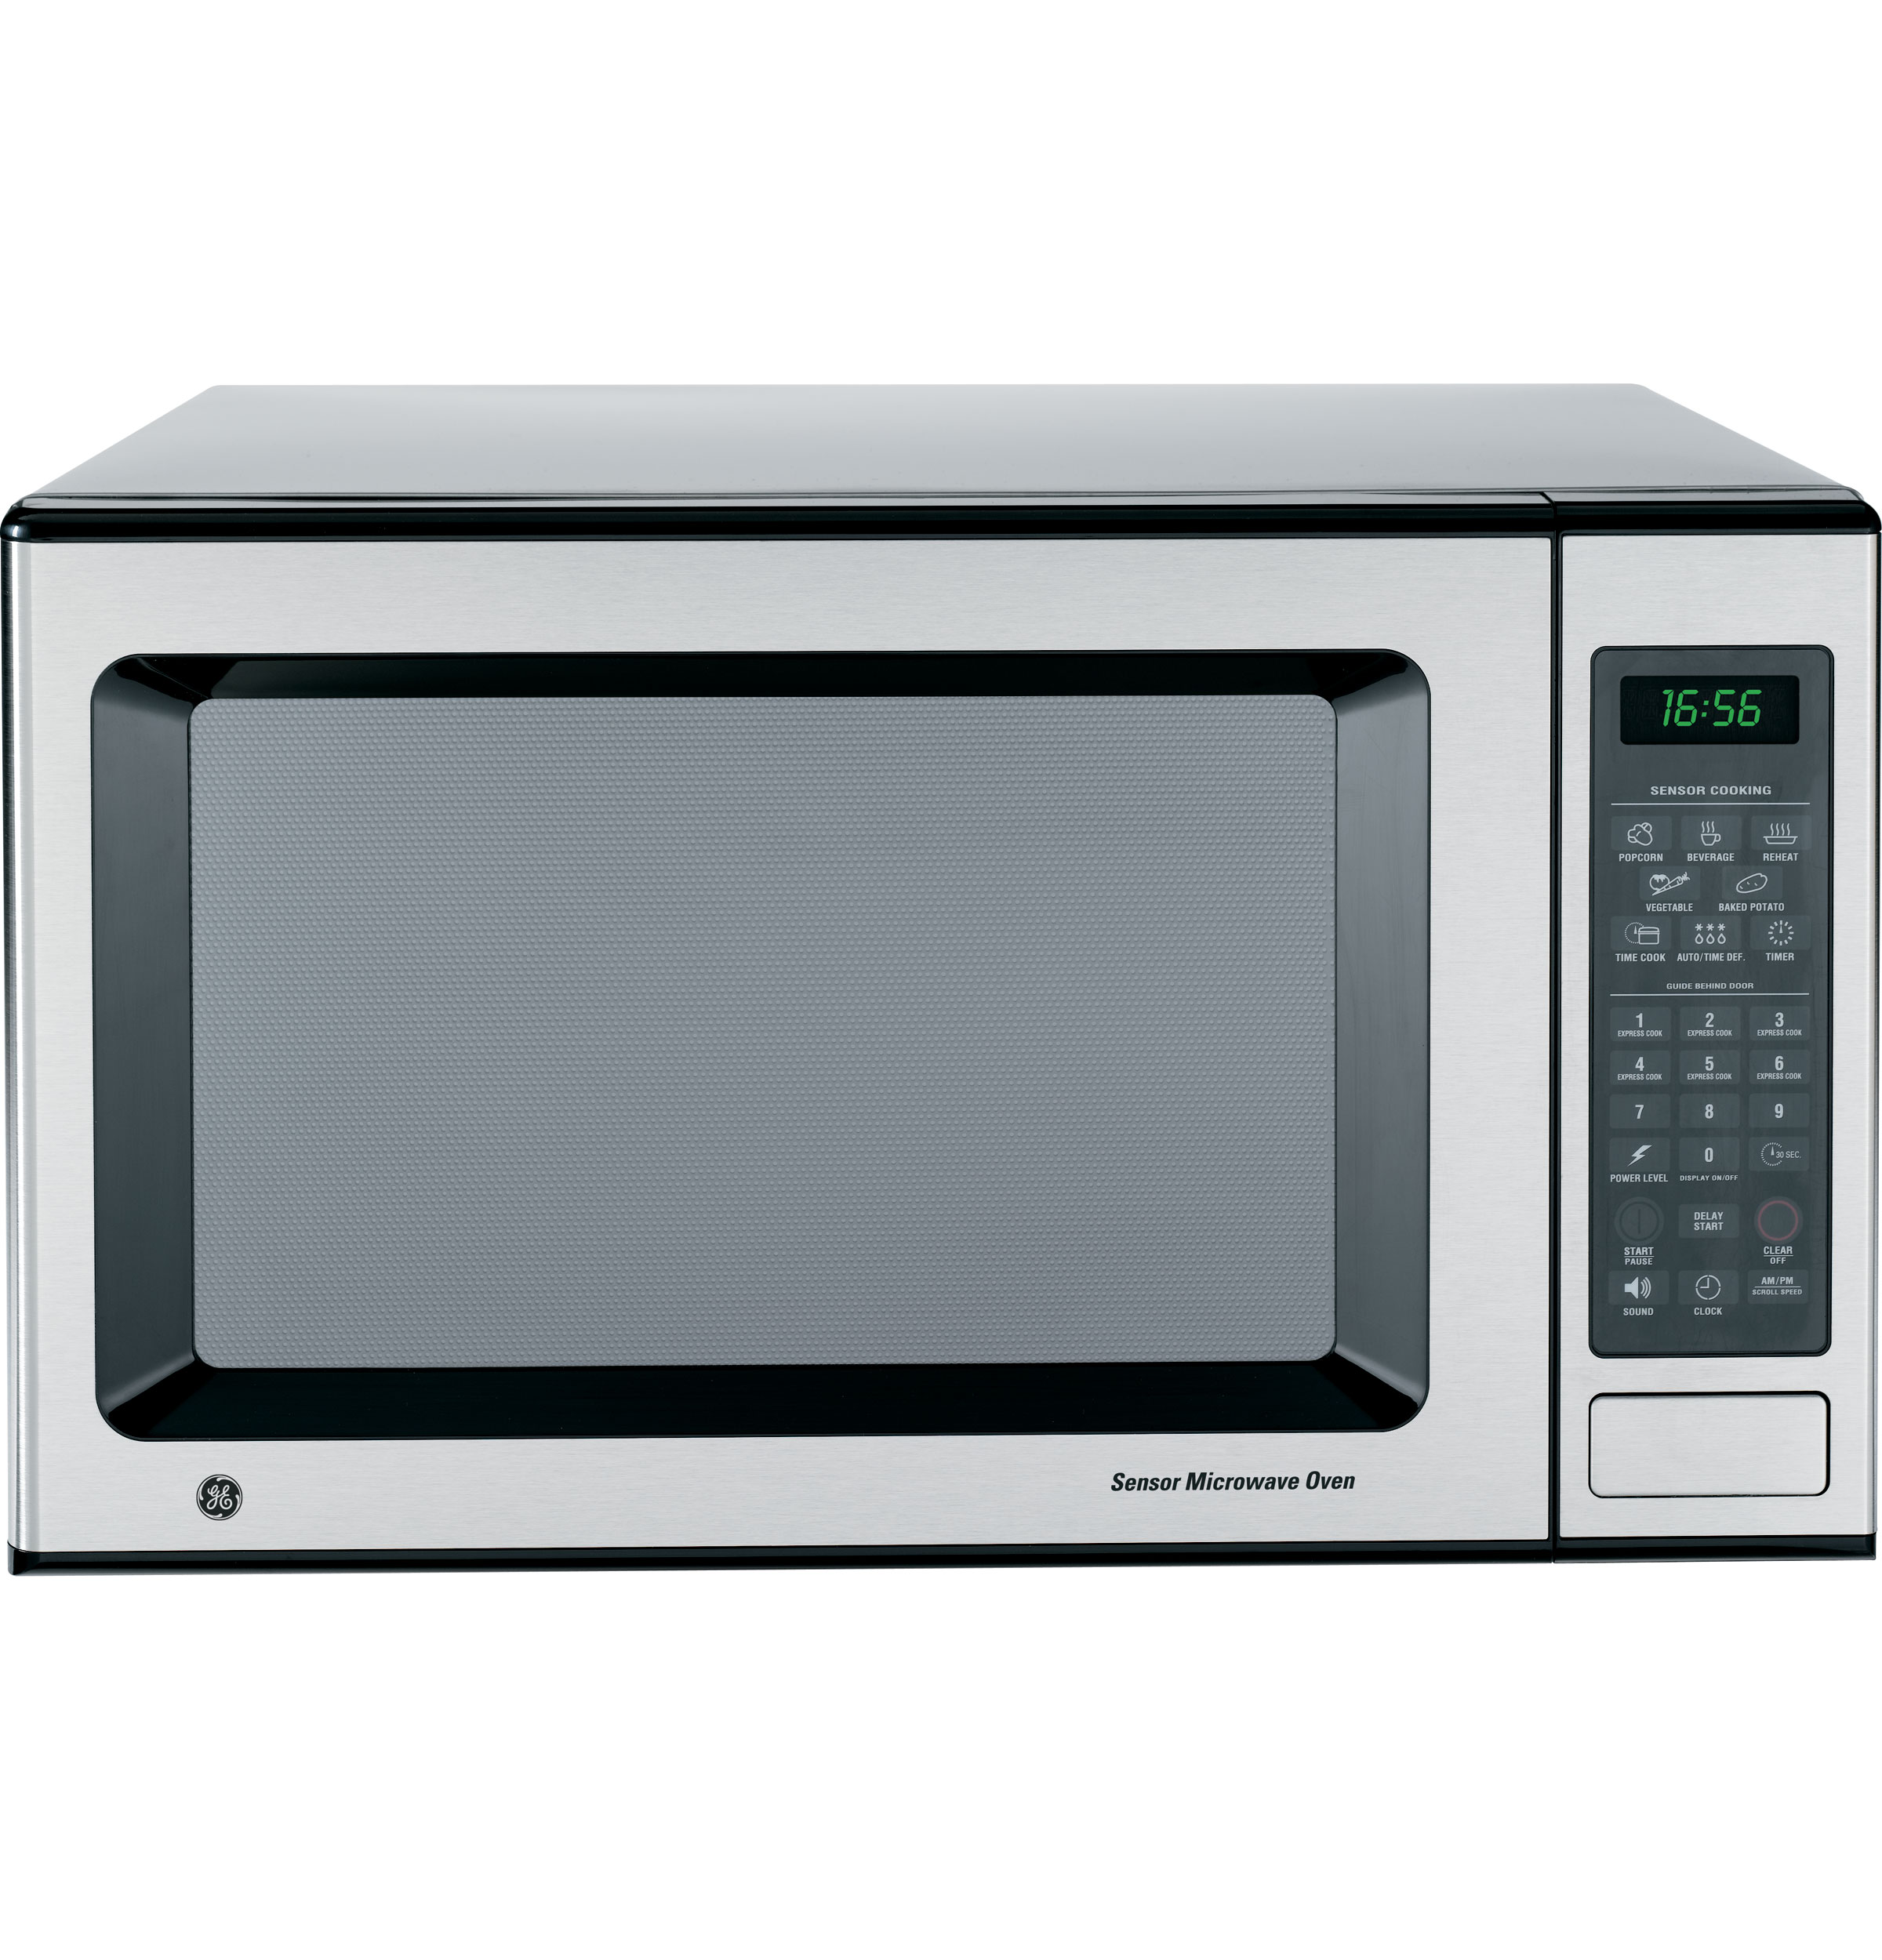 Ge Microwave Ovens Countertop: GE® 1.6 Cu. Ft. Countertop Microwave Oven